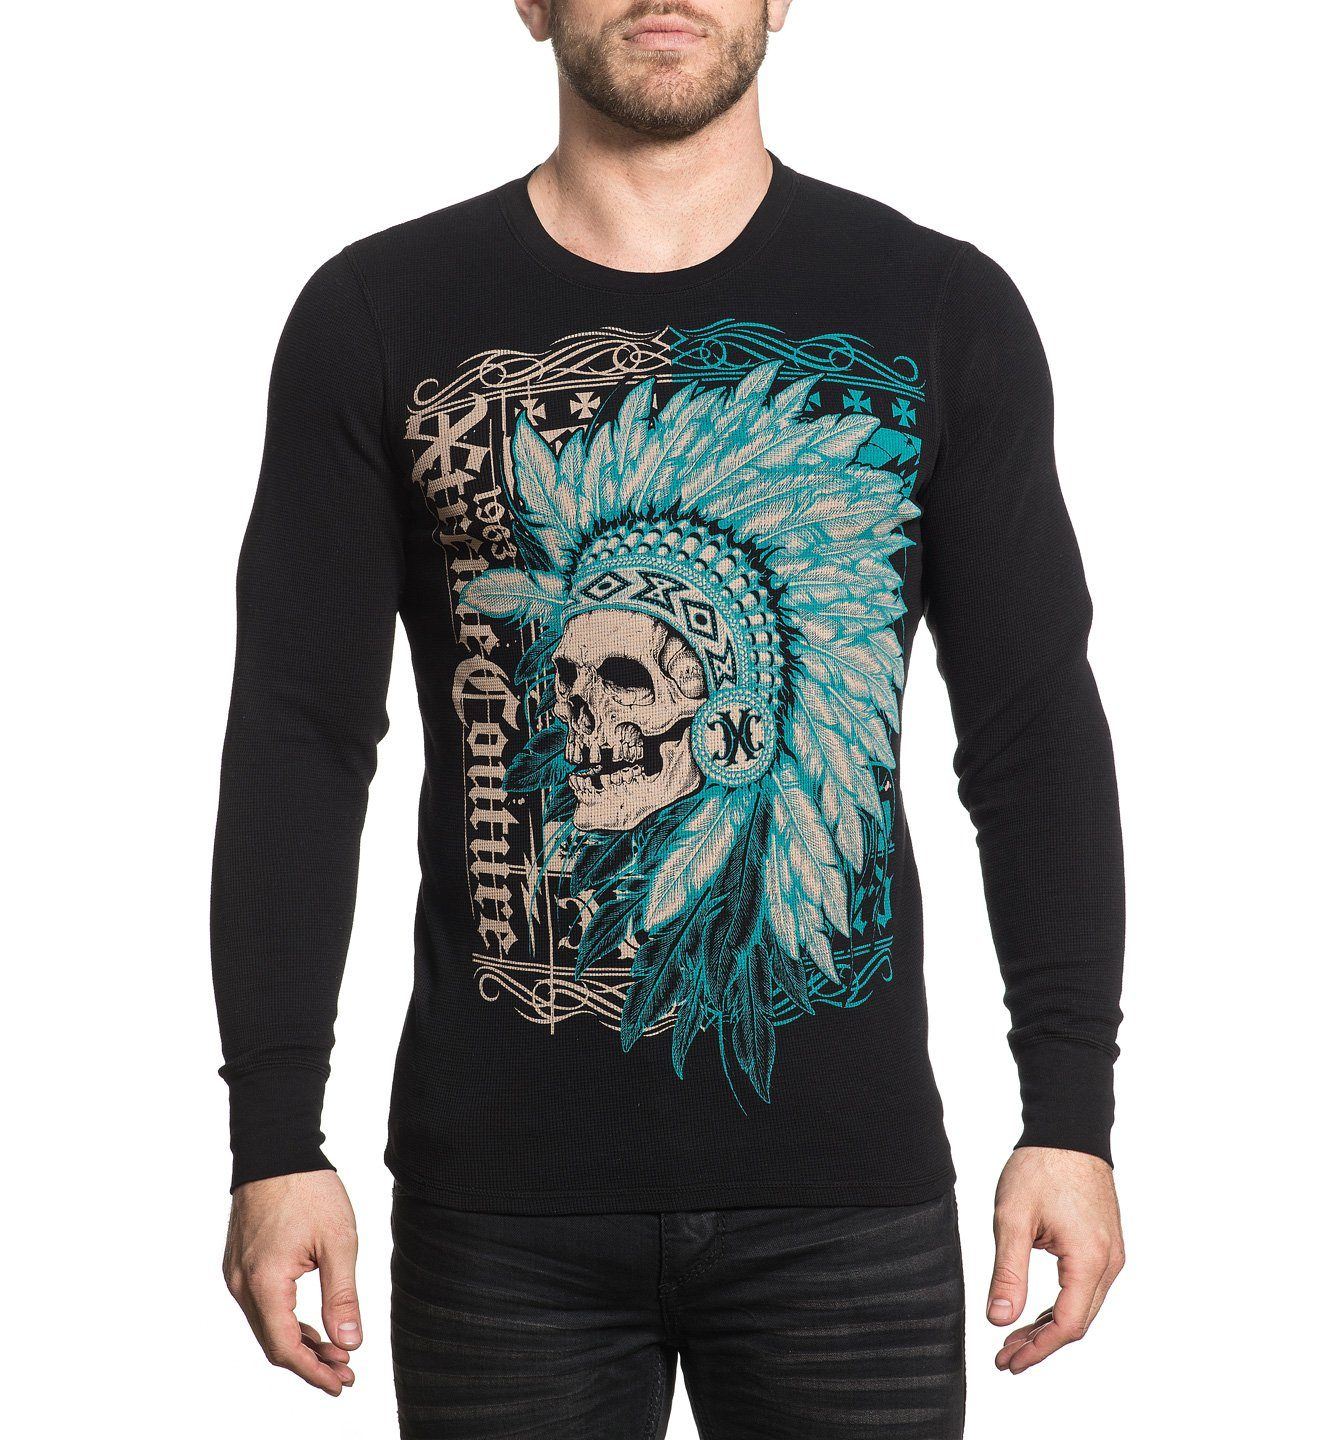 xtreme couture -  Longsleeve mit großem Frontprint